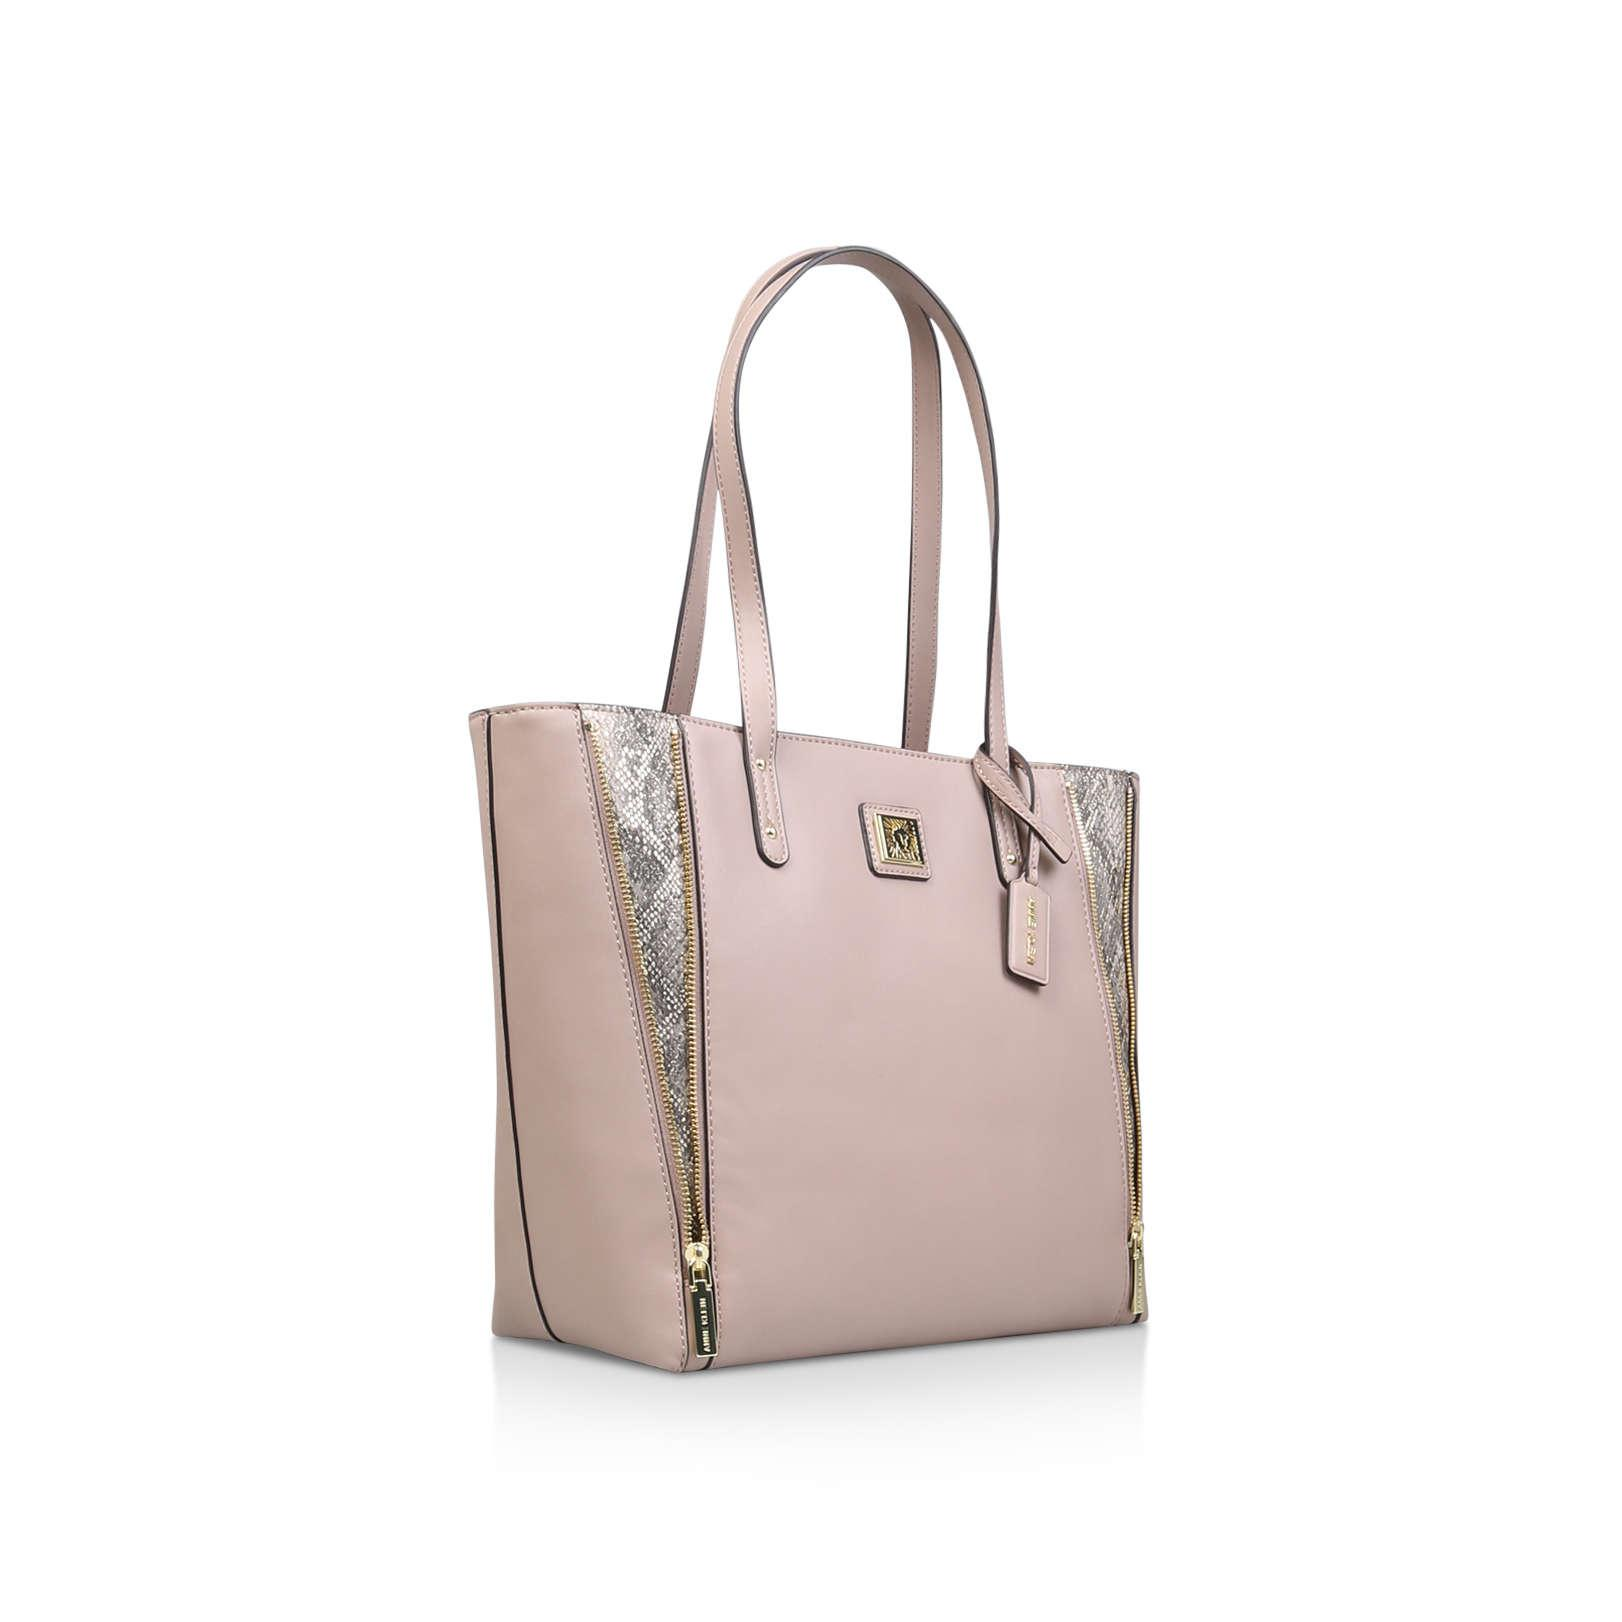 Anne Klein Leather Limitless Tote Handbags Nude in Natural